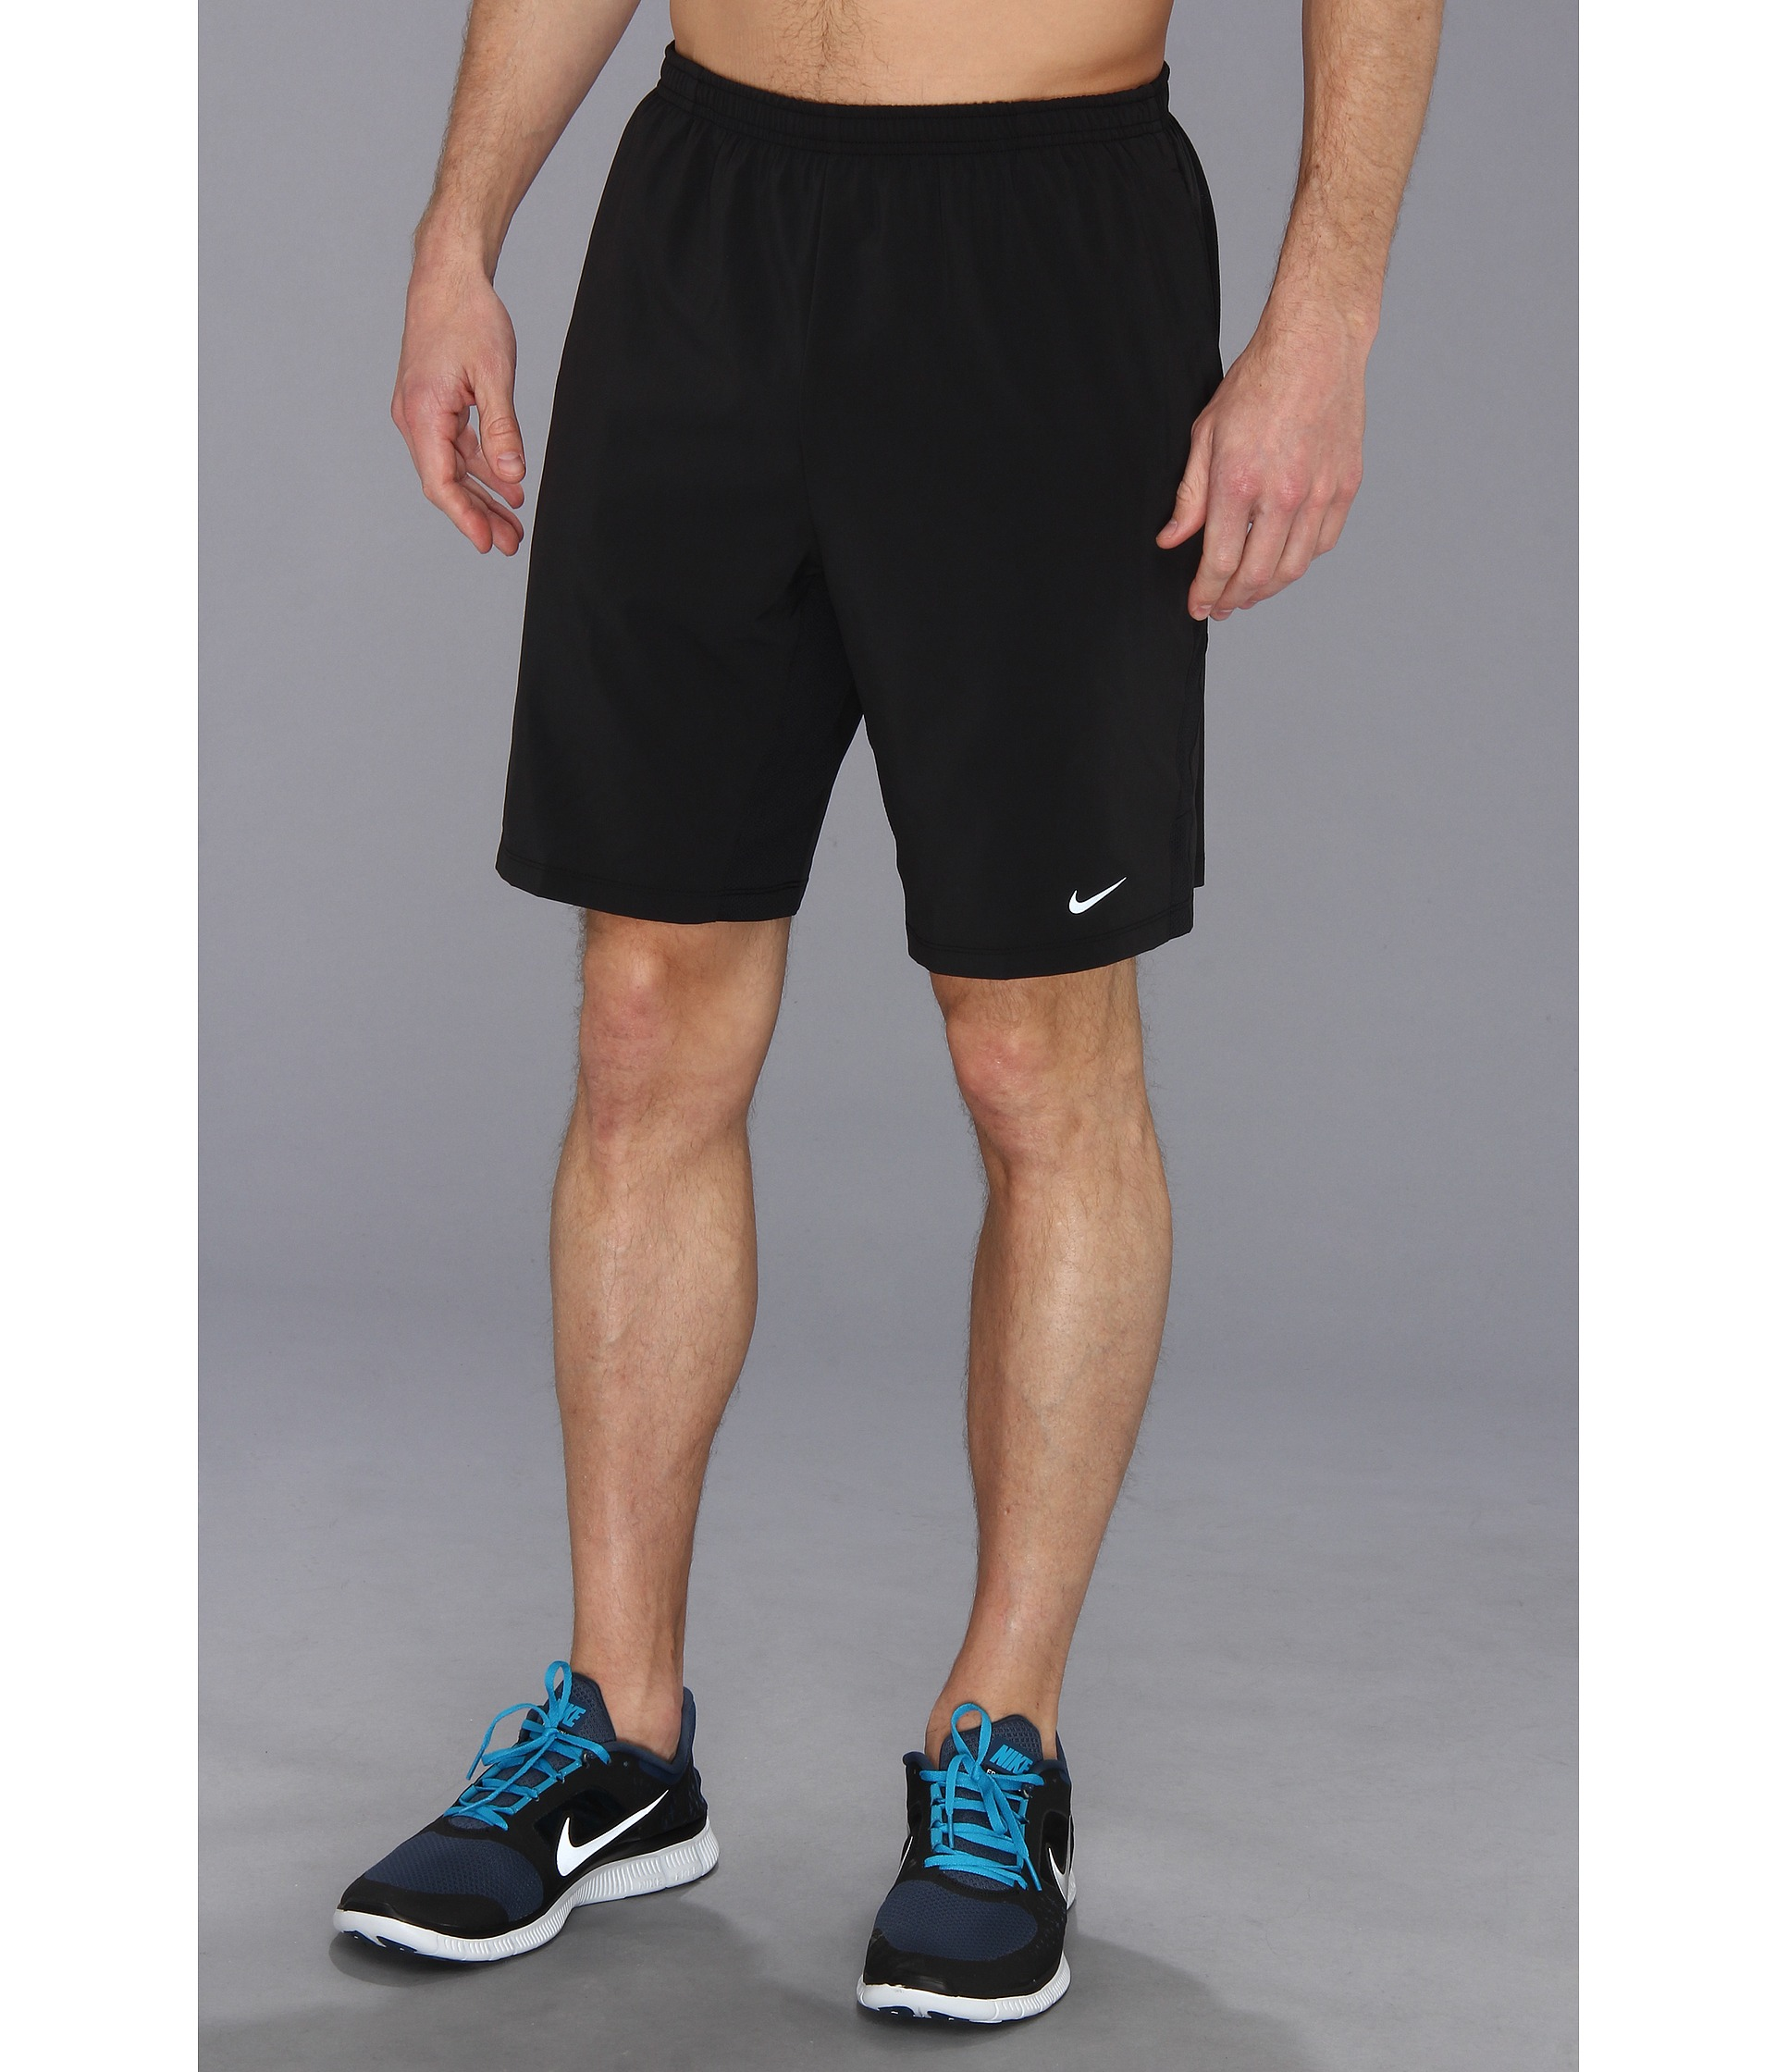 nike men's 7'' flex distance printed running shorts